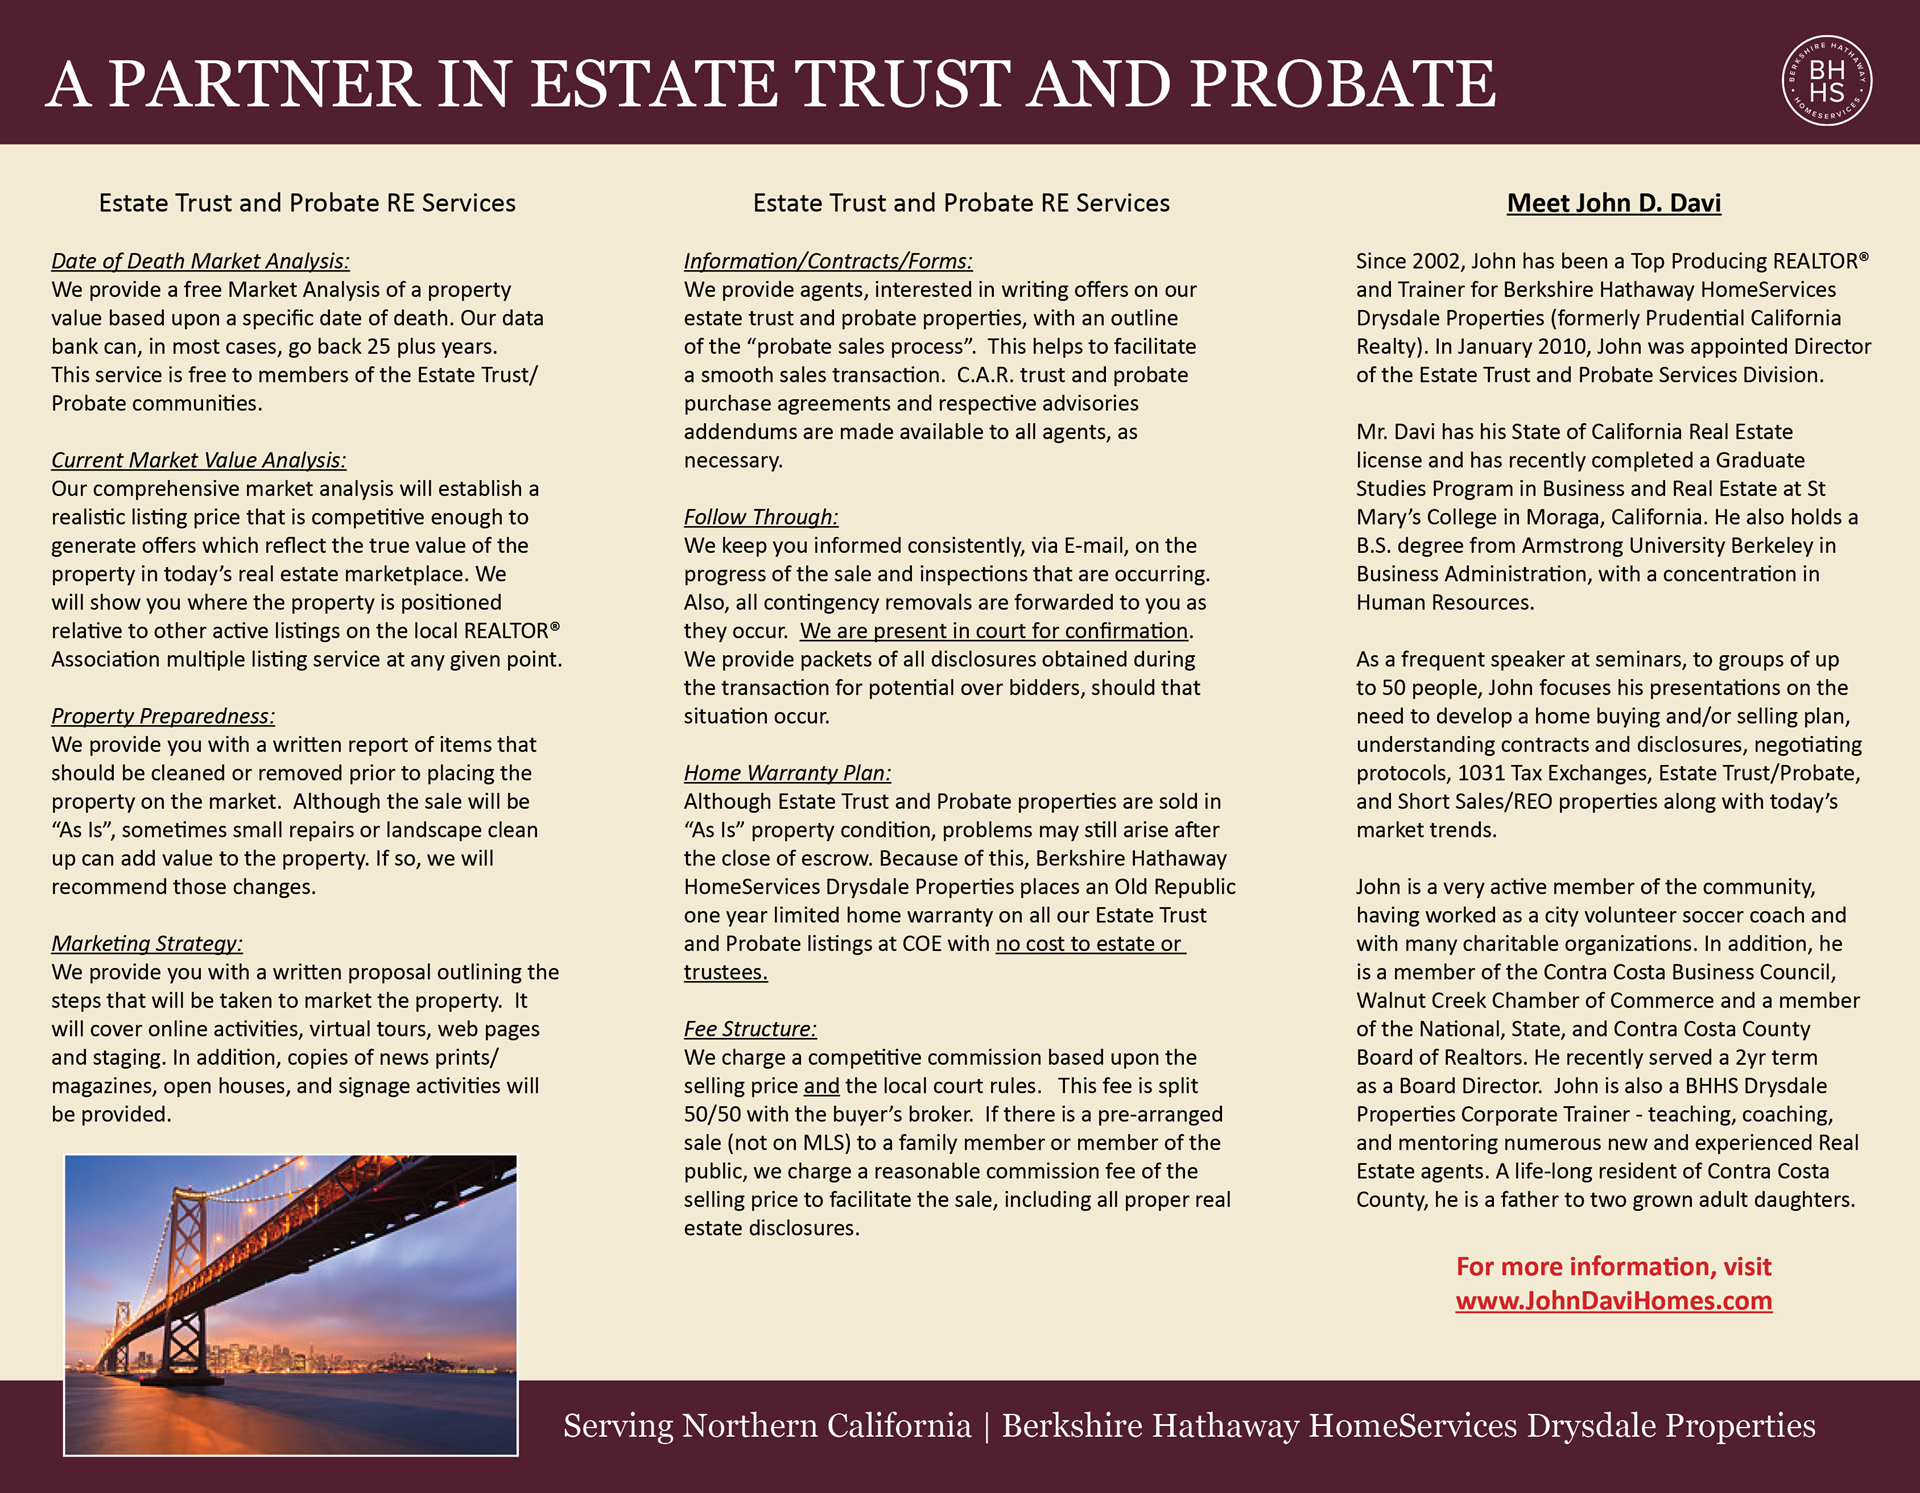 Trust and Probate Brochure - 2